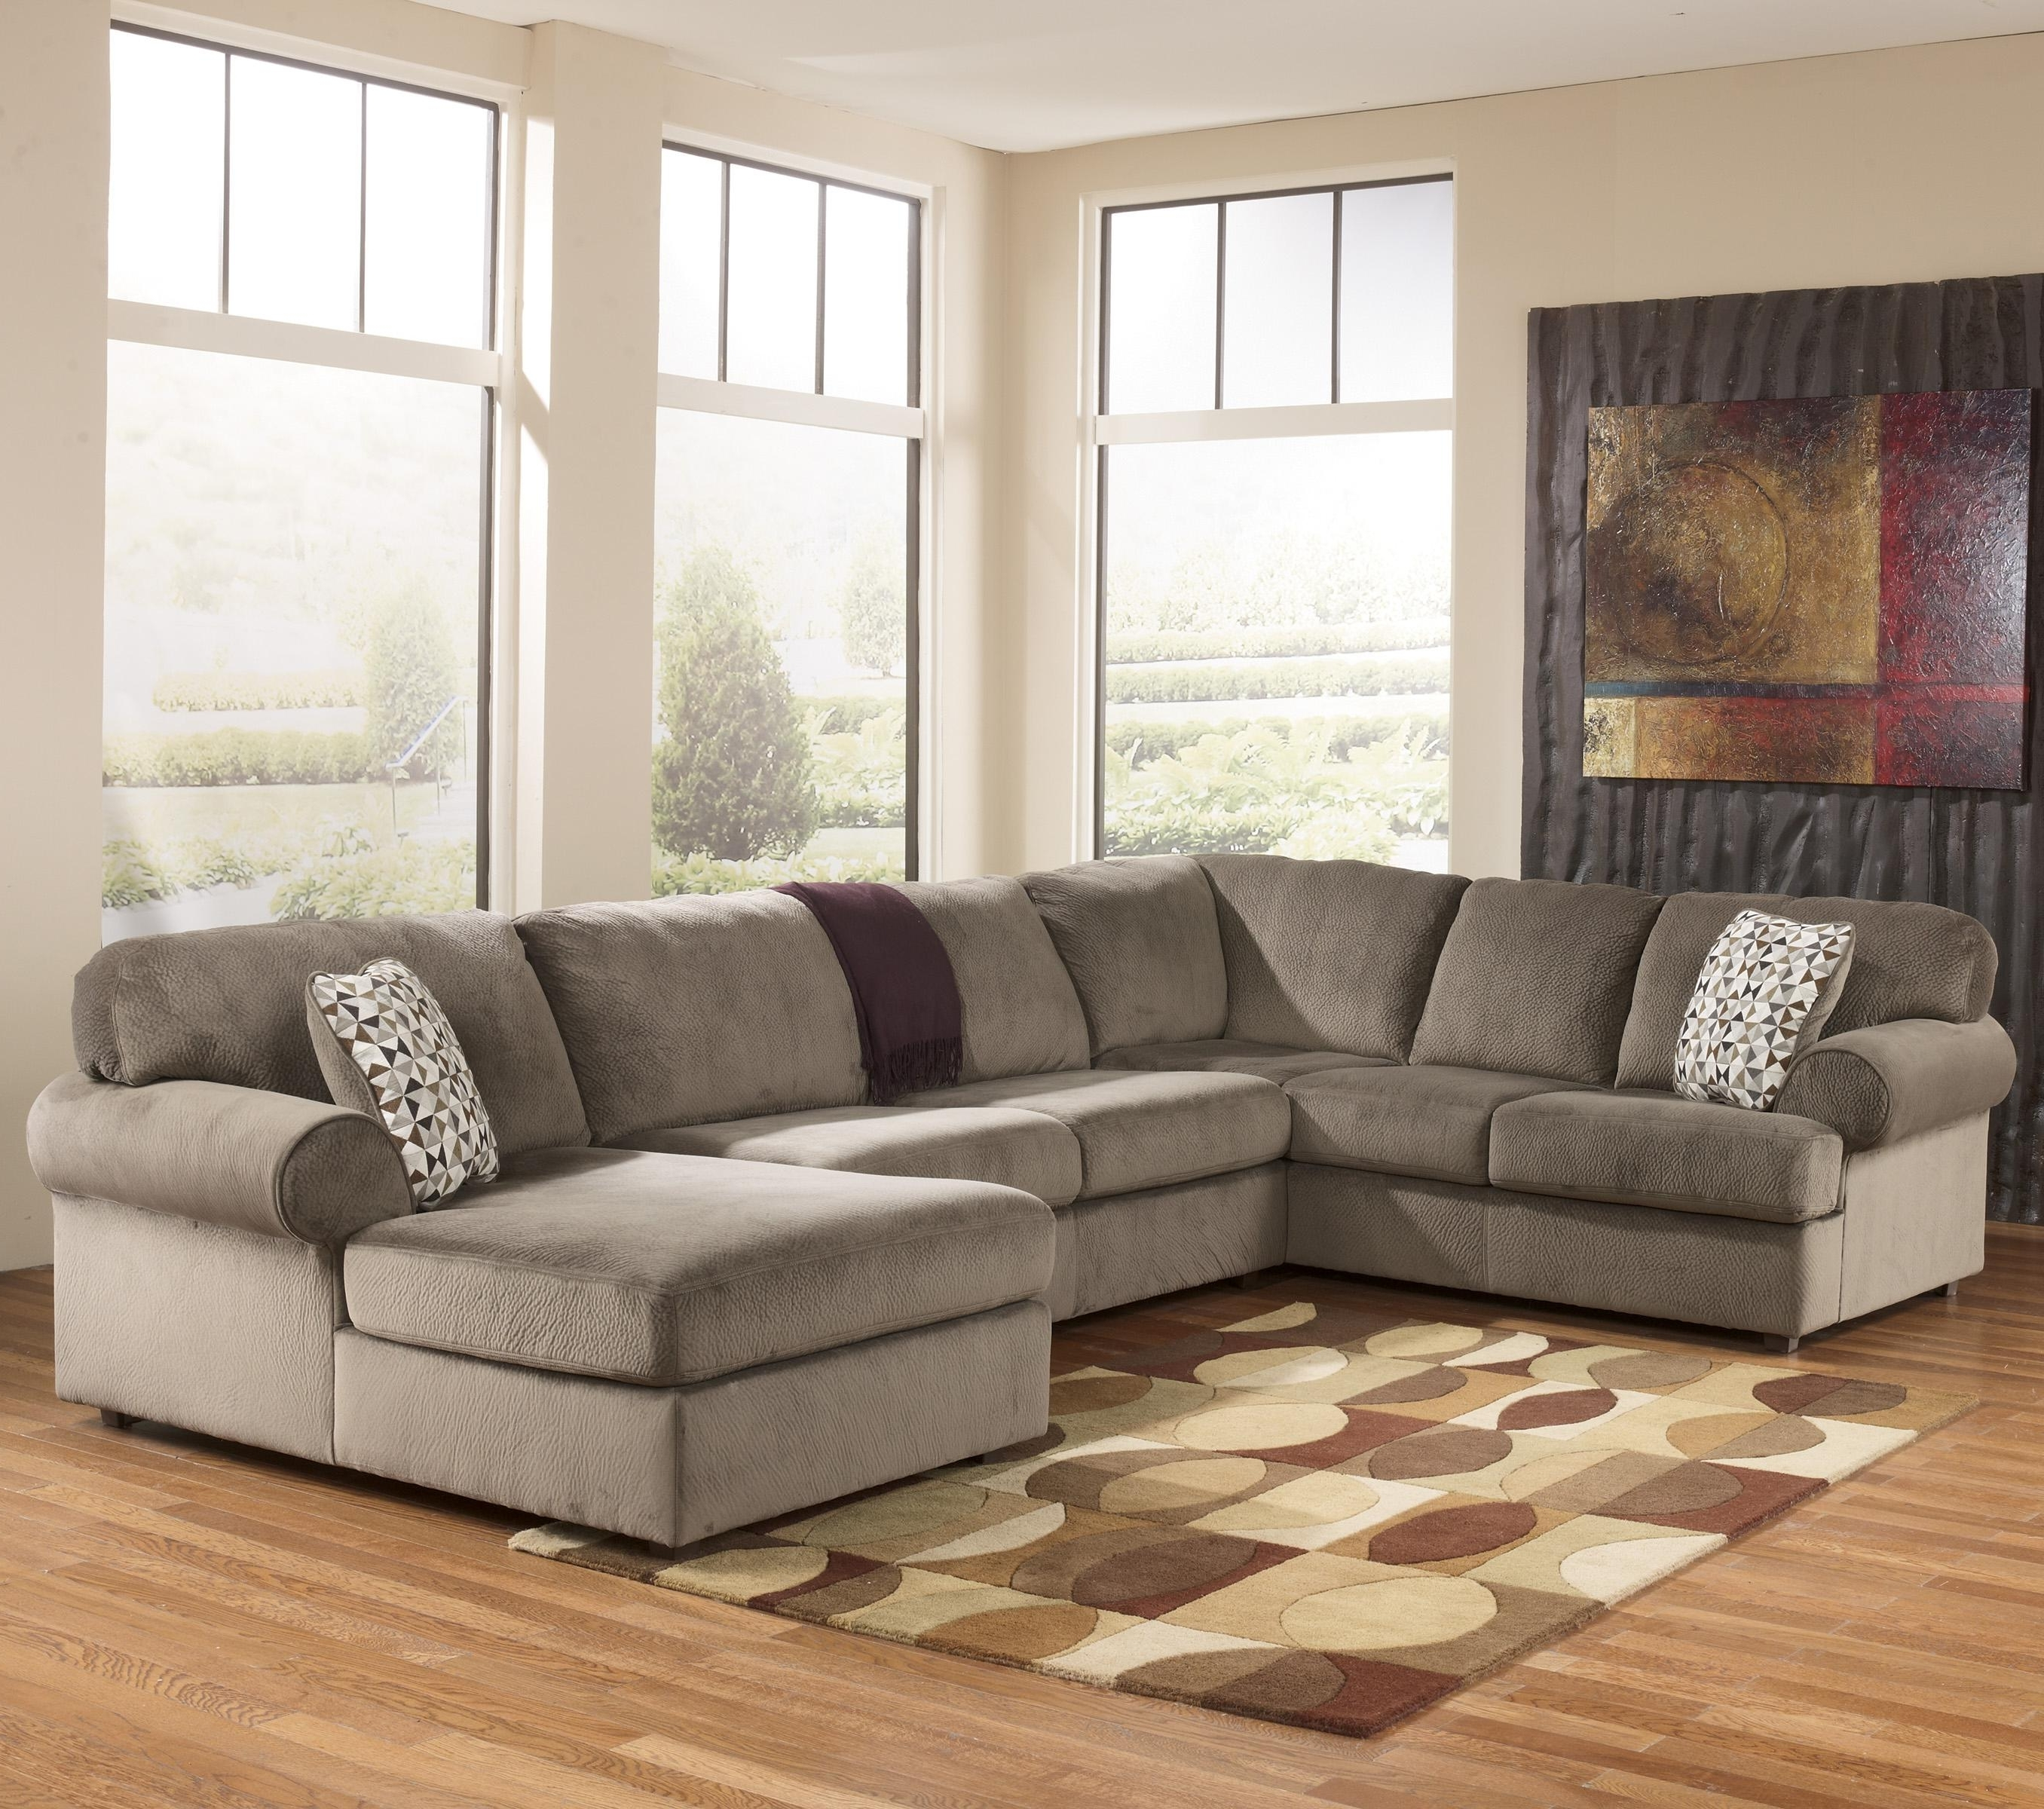 Signature Designashley Jessa Place – Dune Casual Sectional Inside Most Popular El Paso Tx Sectional Sofas (View 18 of 20)